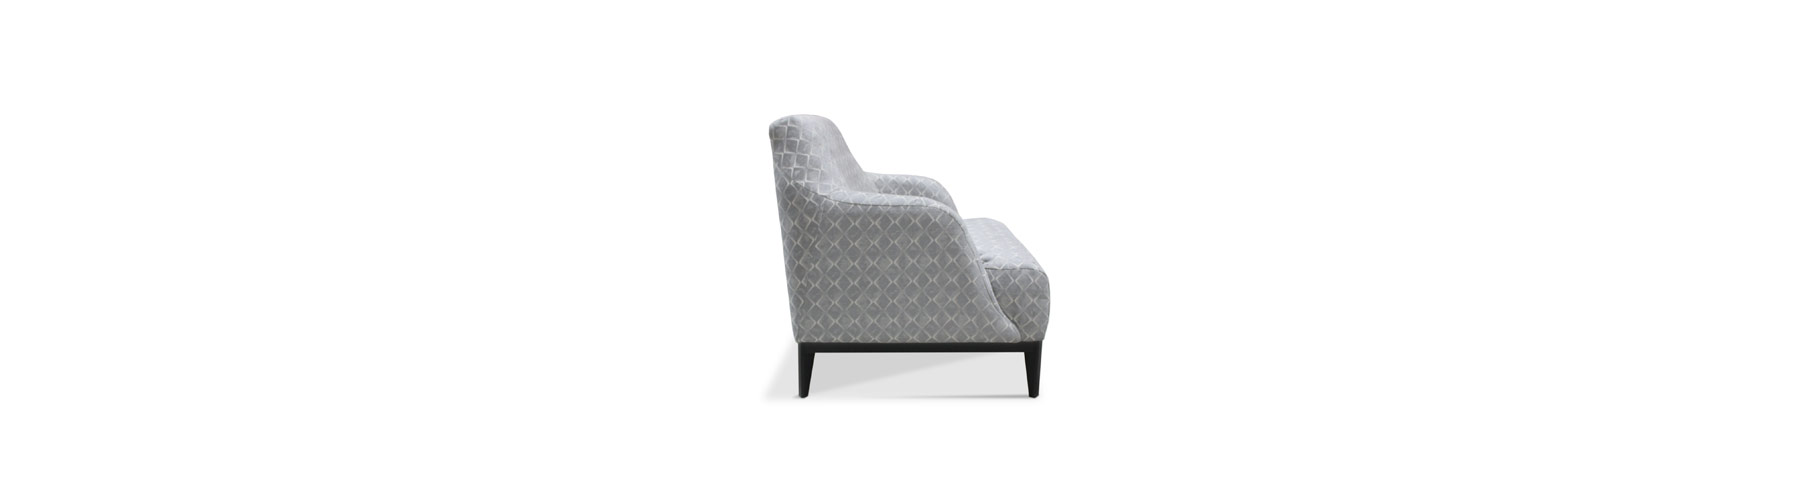 Lolly côté - Fauteuil William